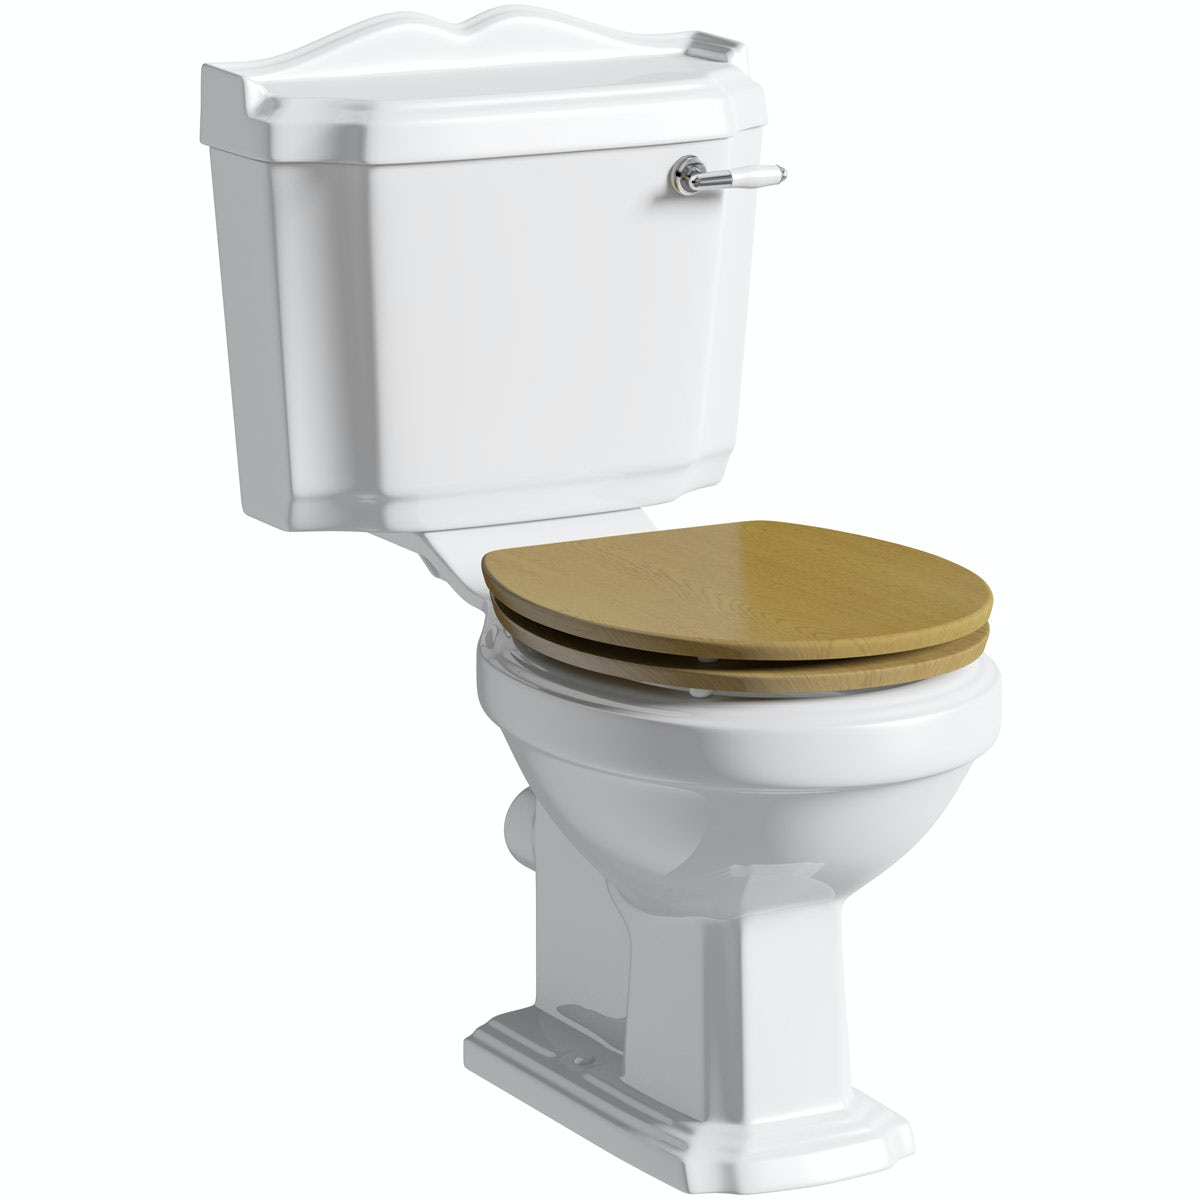 The Bath Co. Winchester close coupled toilet with oak seat